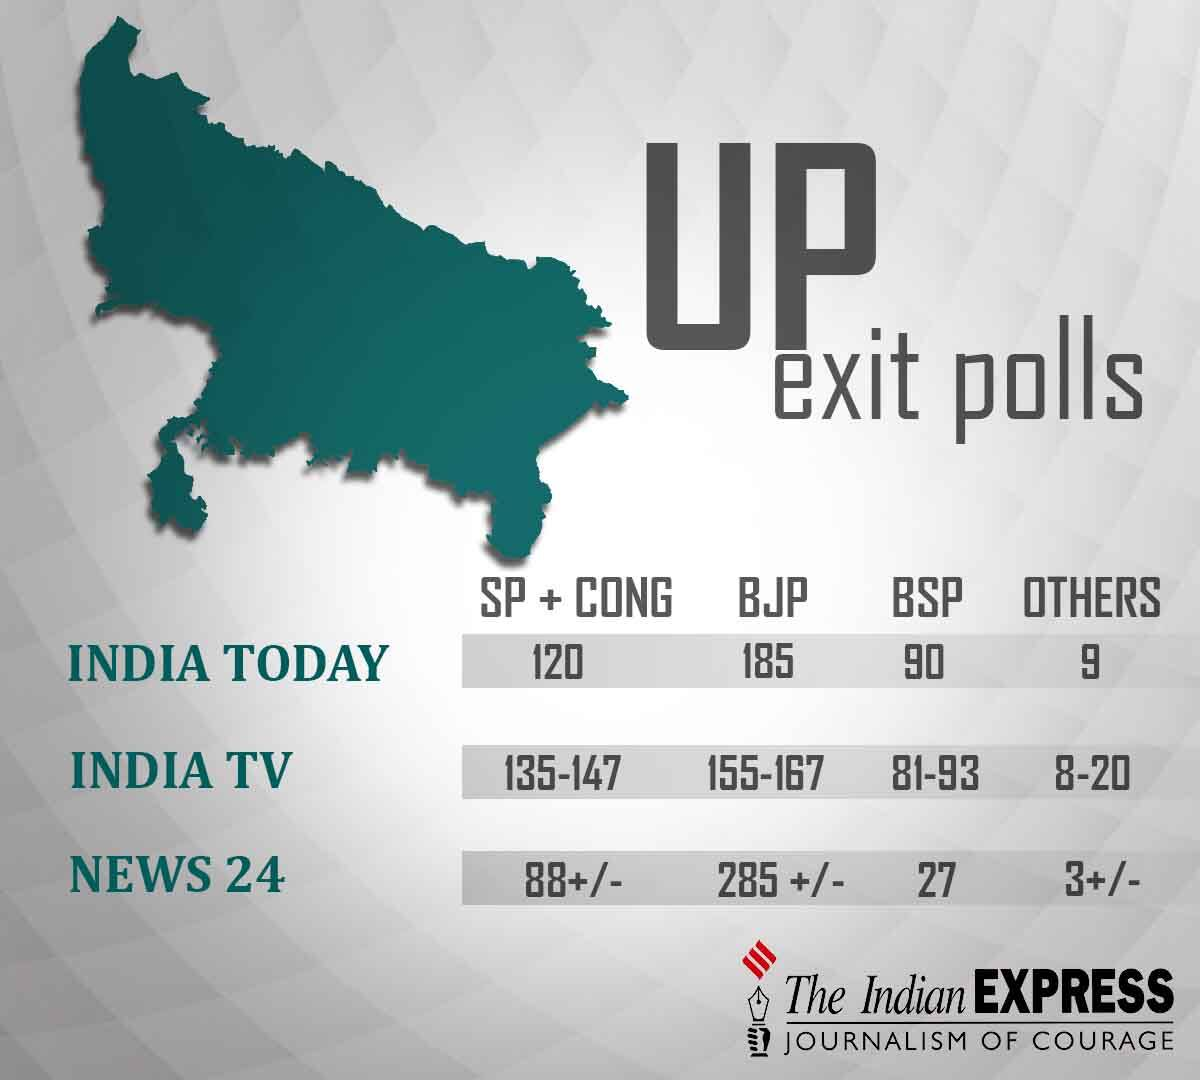 2c91a0f22f95 UP exit poll results 2017  BJP ahead of all